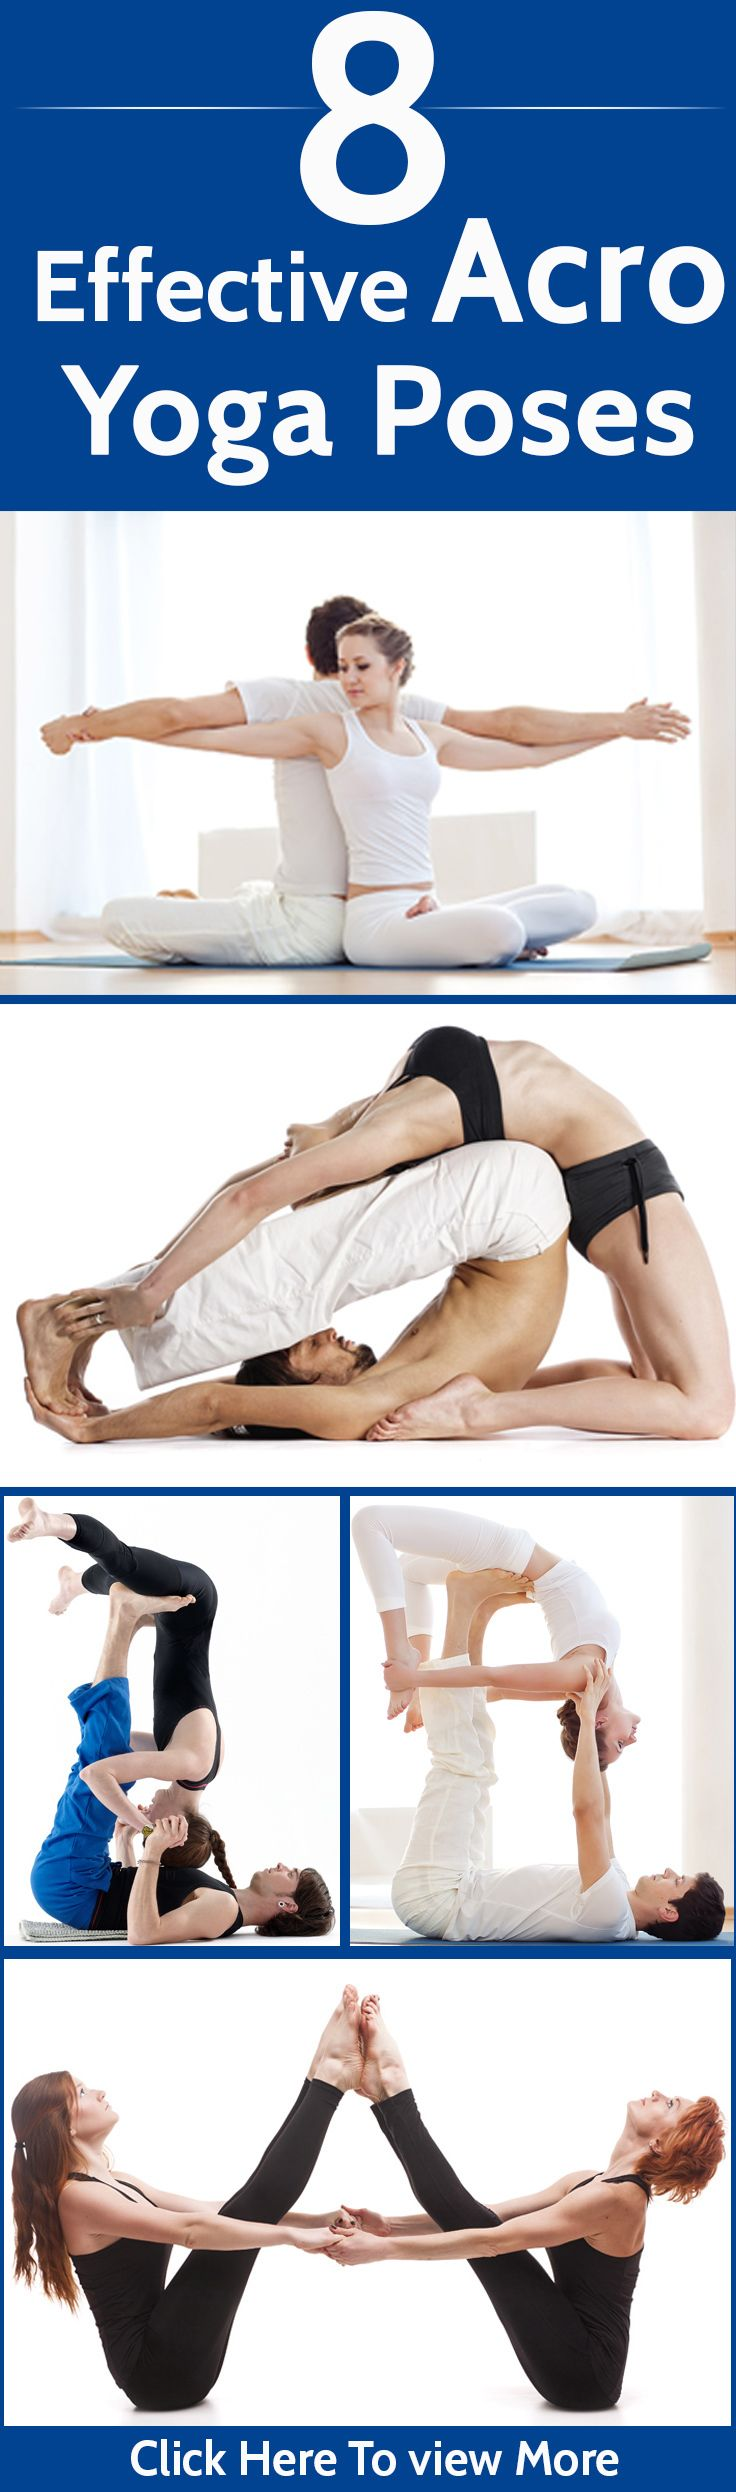 8 Effective Acro Yoga Poses For A Healthy Body